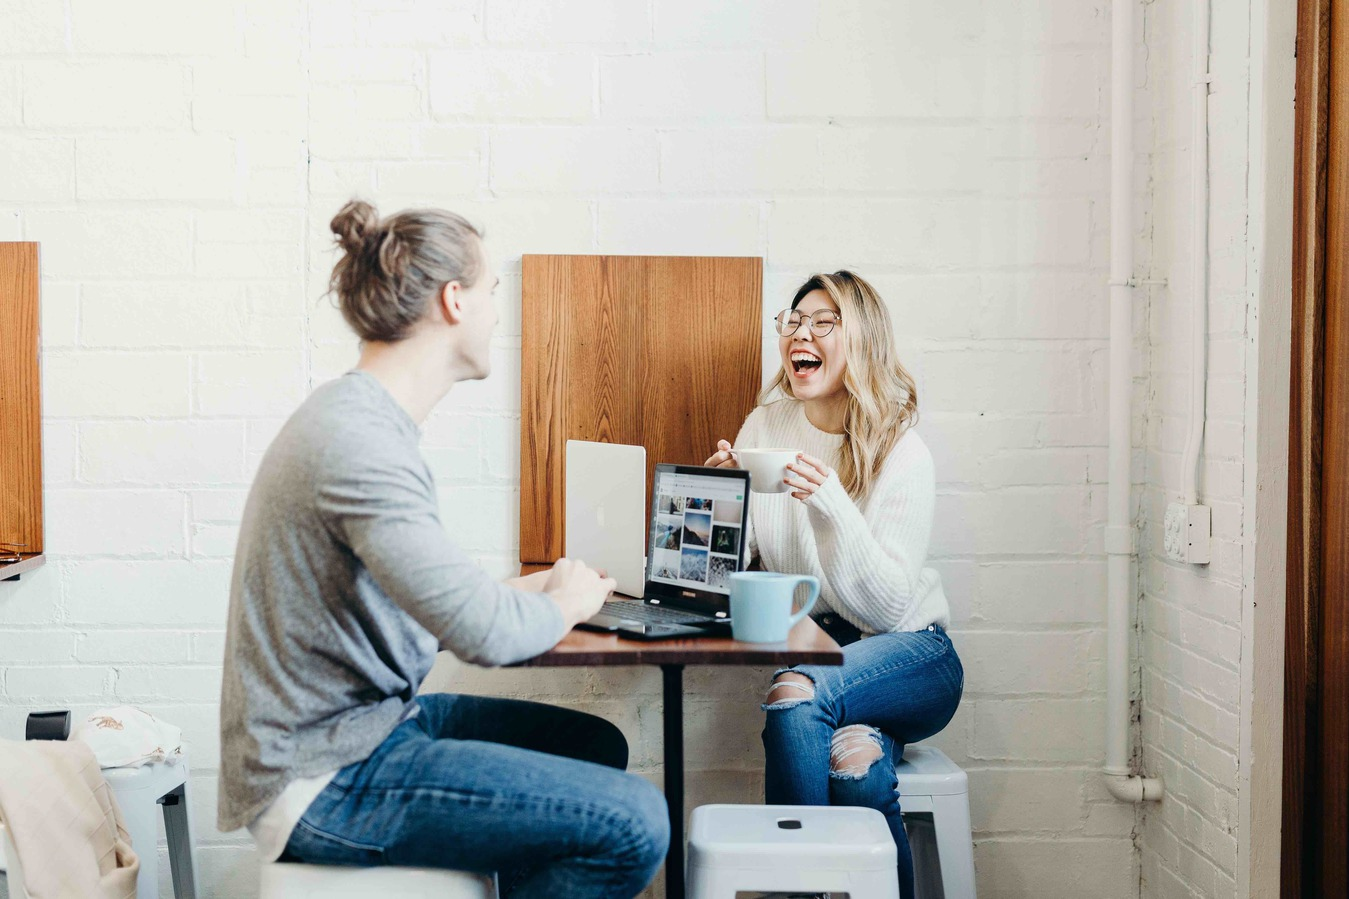 Man and Woman Sitting Laughing in an Office Environment